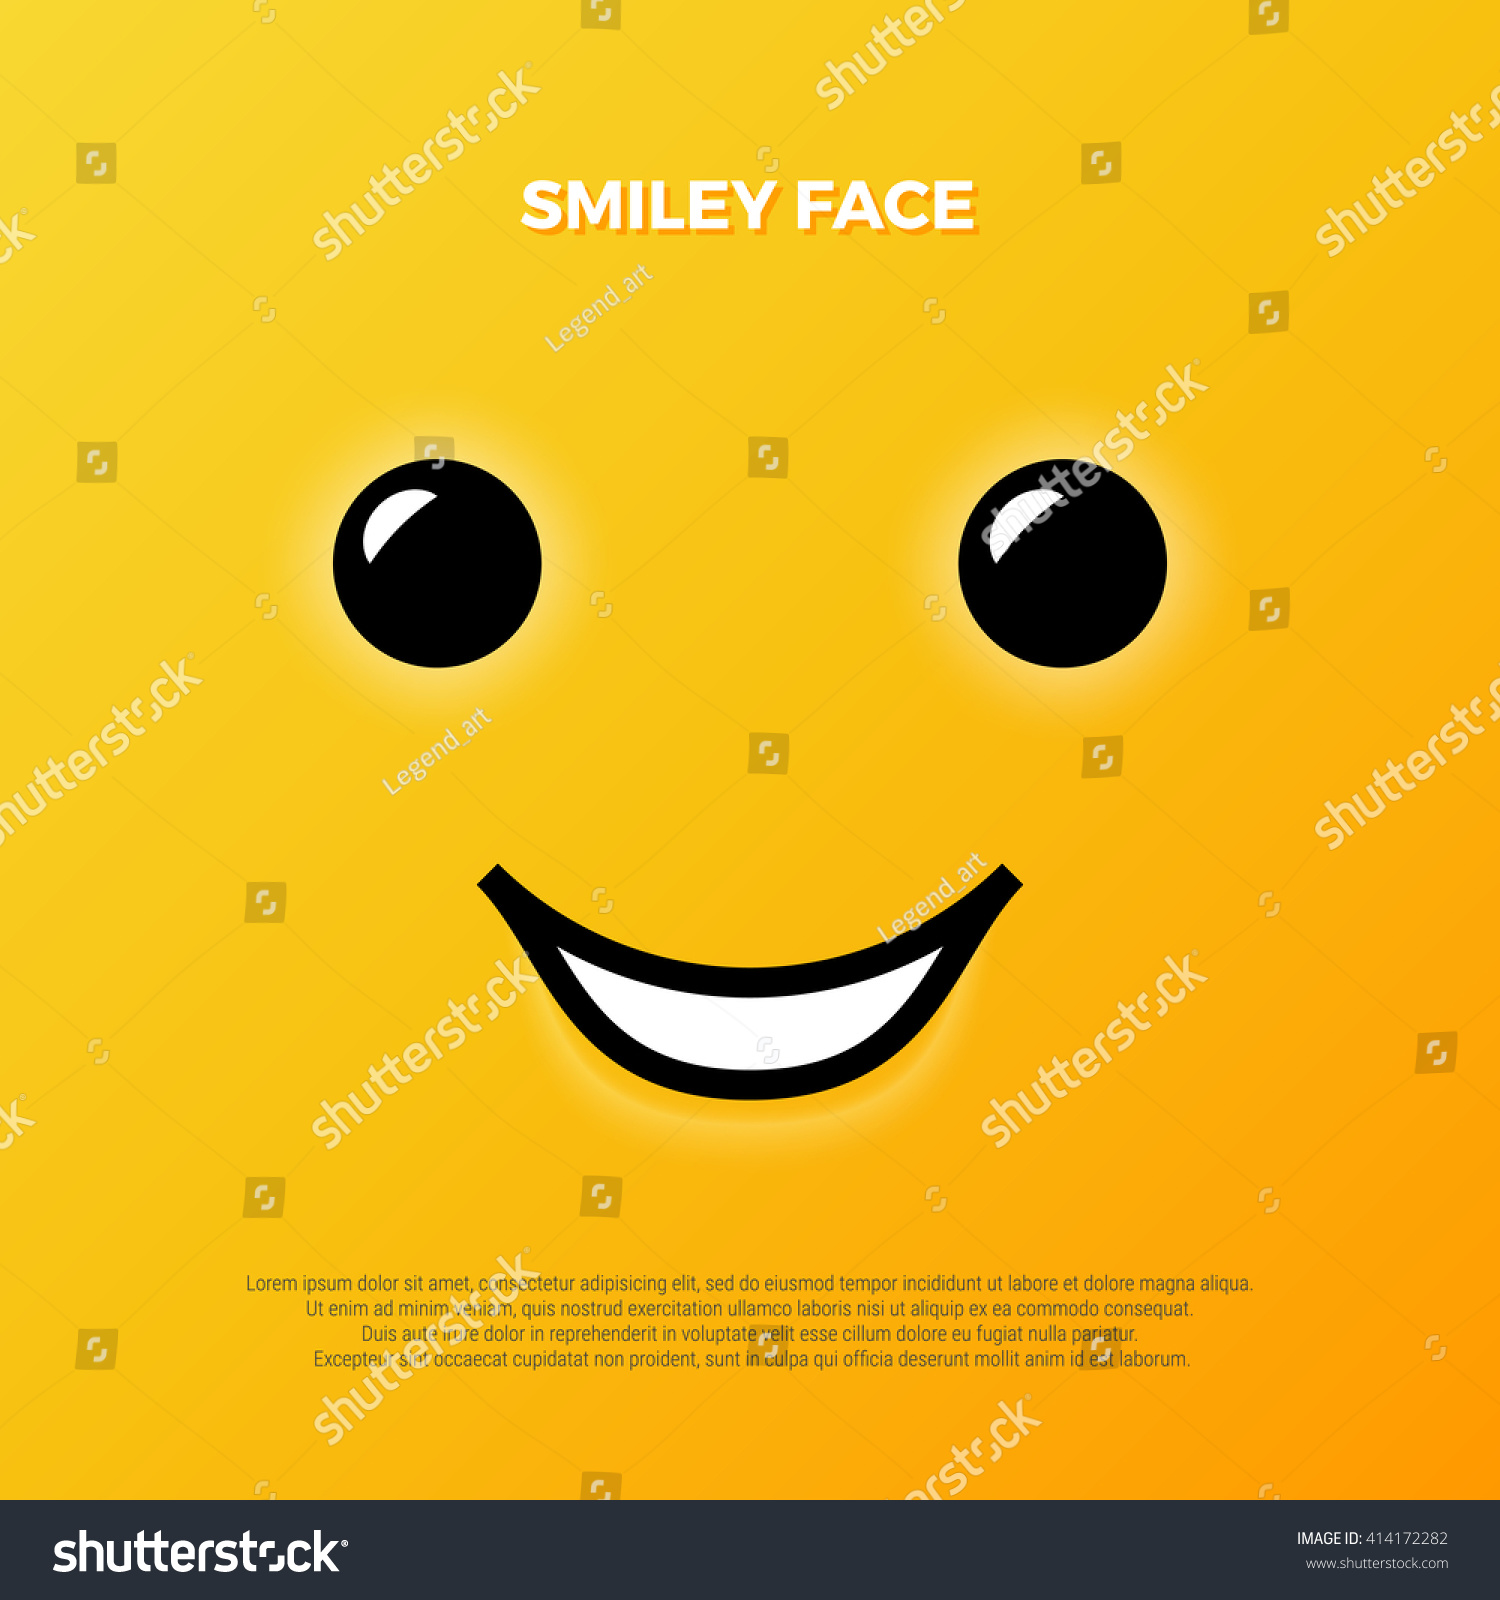 smiley fish dating This is a list of emoji meanings including people, nature, object, places, and symbol emojis find the real meaning to every single emoji emojis are supported in ios.